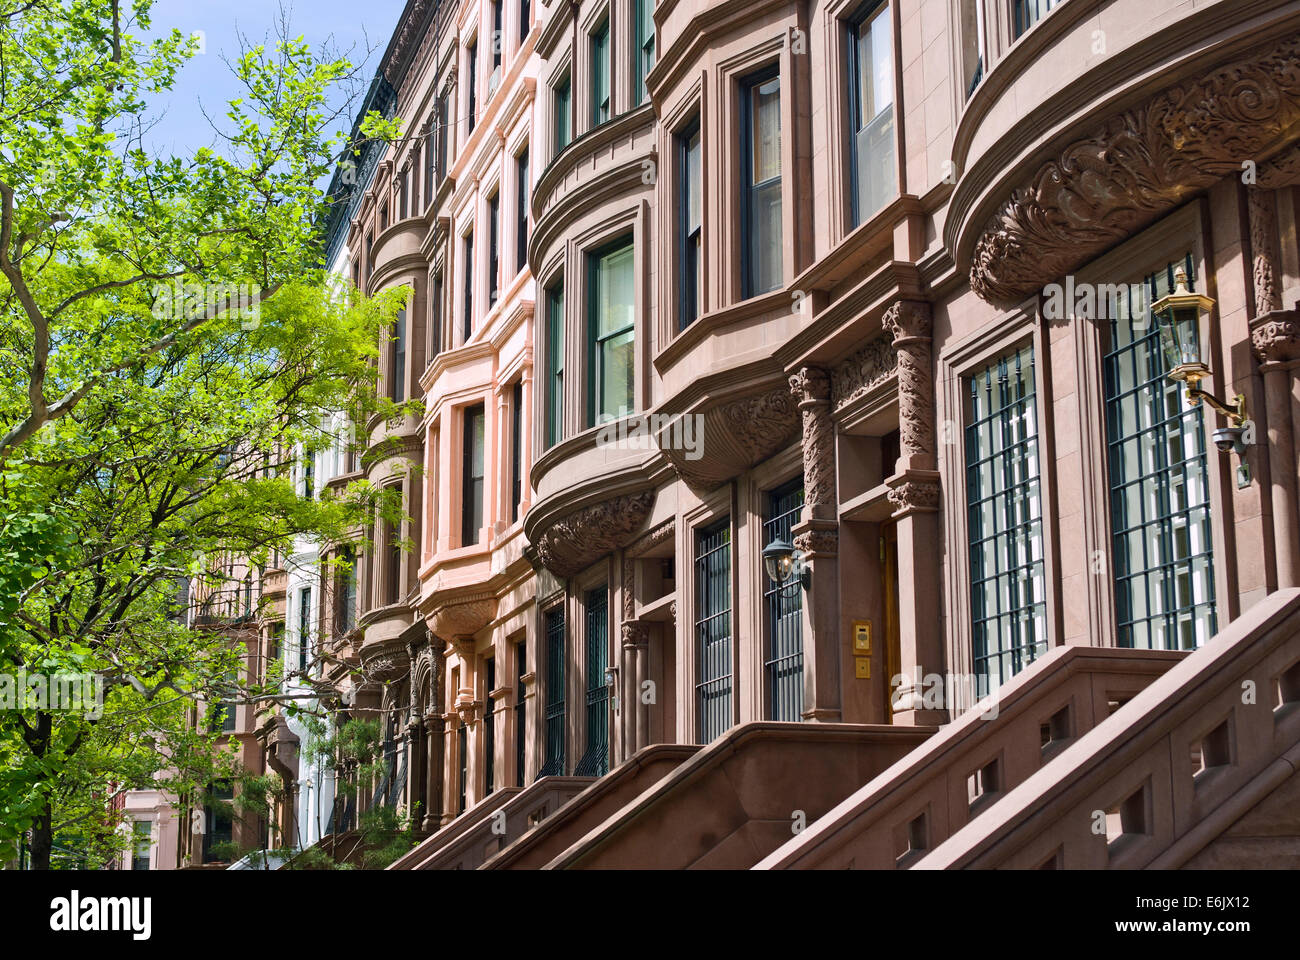 Brownstone apartment h user geb ude wohnungen auf der upper west side manhattan new york - New york wohnungen ...